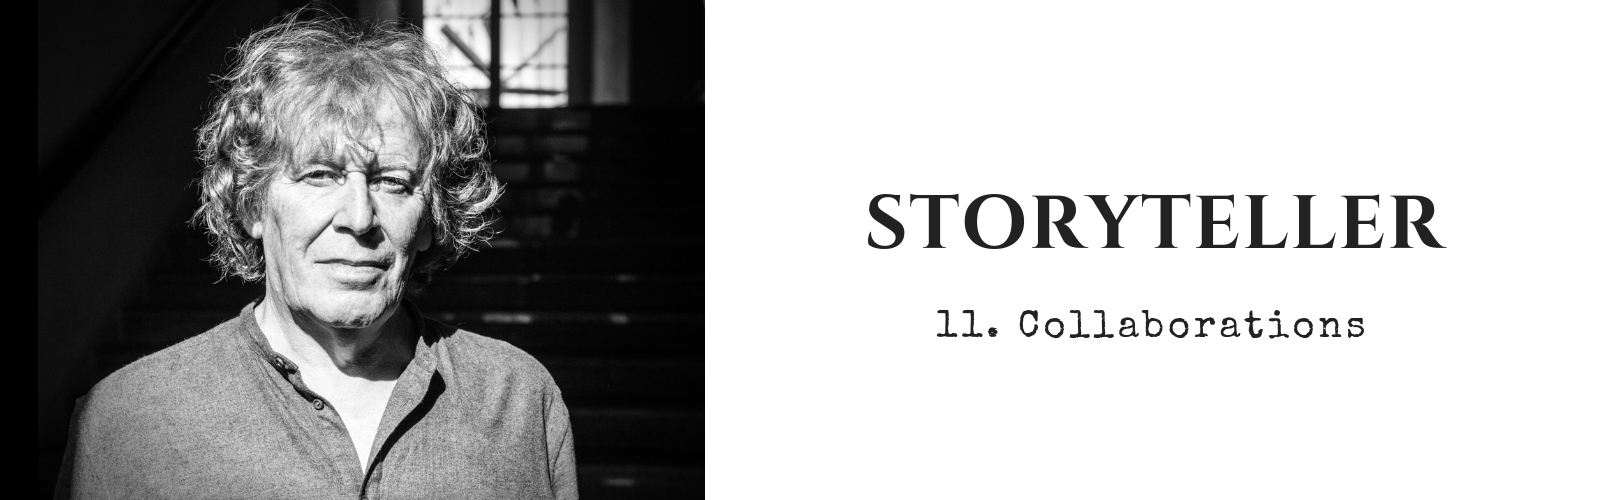 storyteller 11 Collaborations by Pat Mills